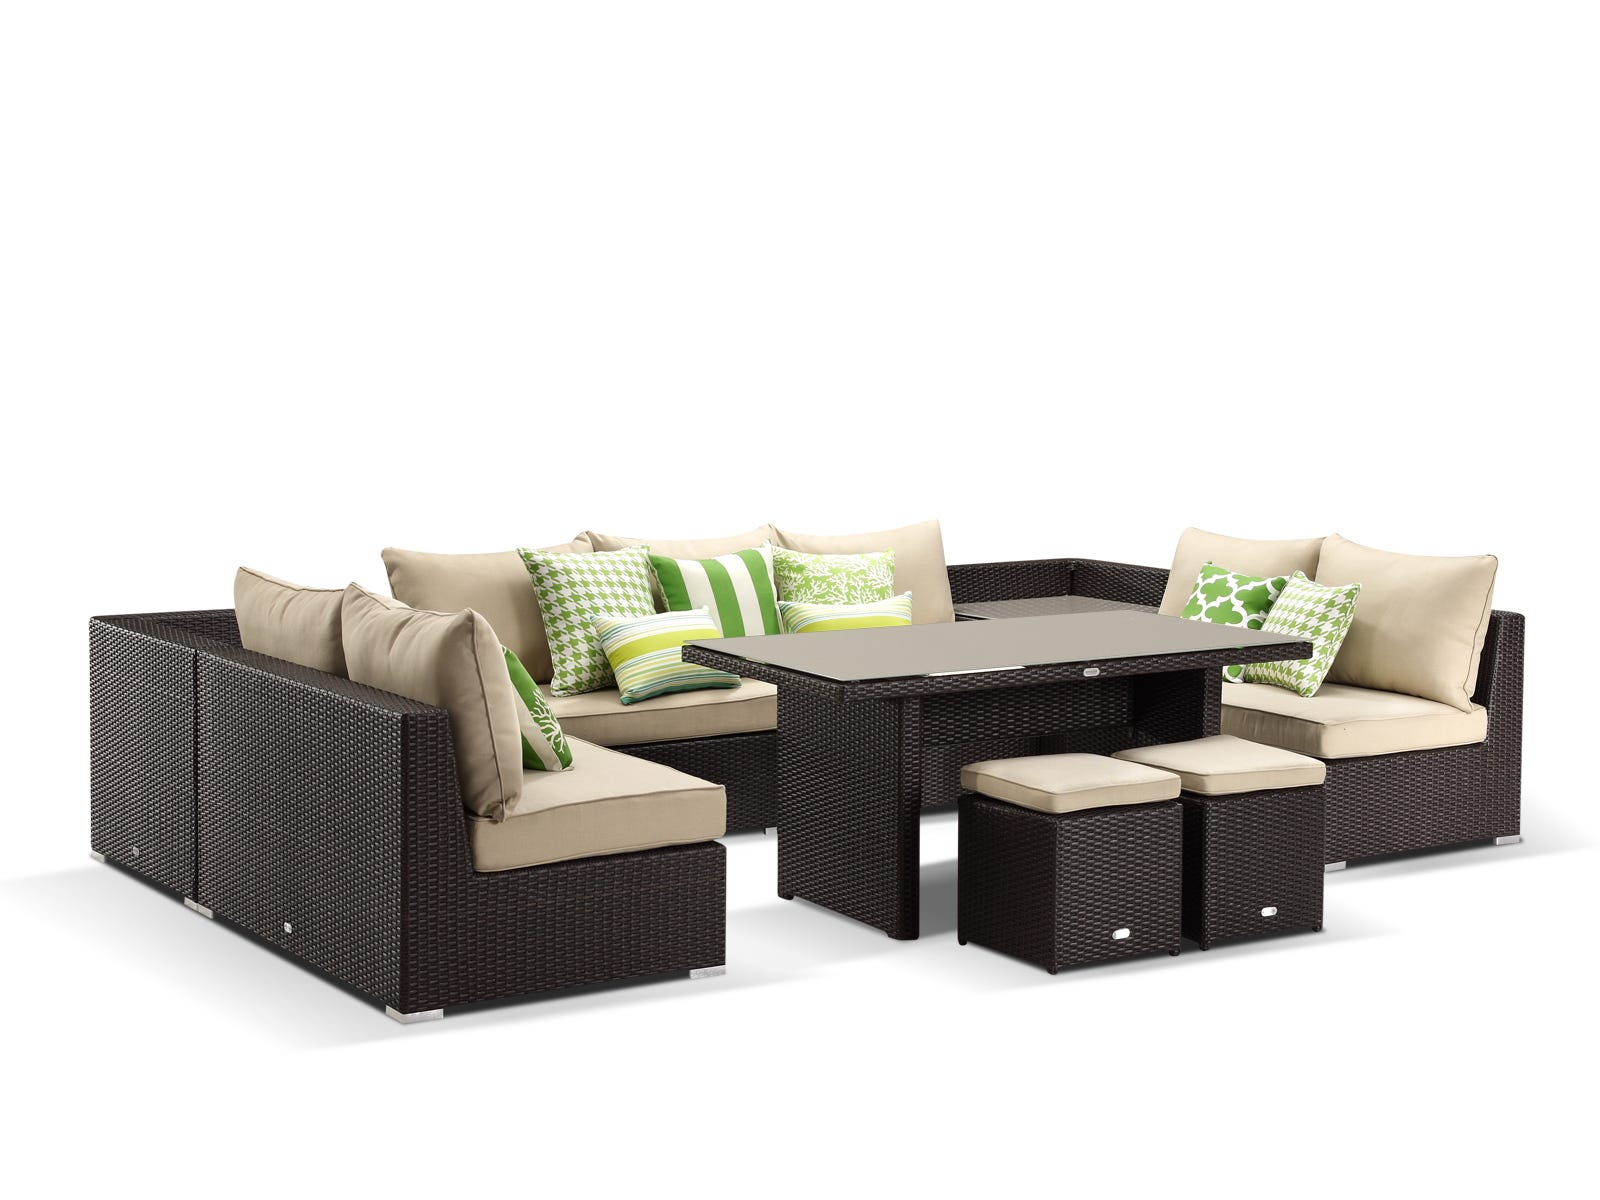 Outdoor Furniture Lounge Wicker Como 8pc Darkbronze Sand